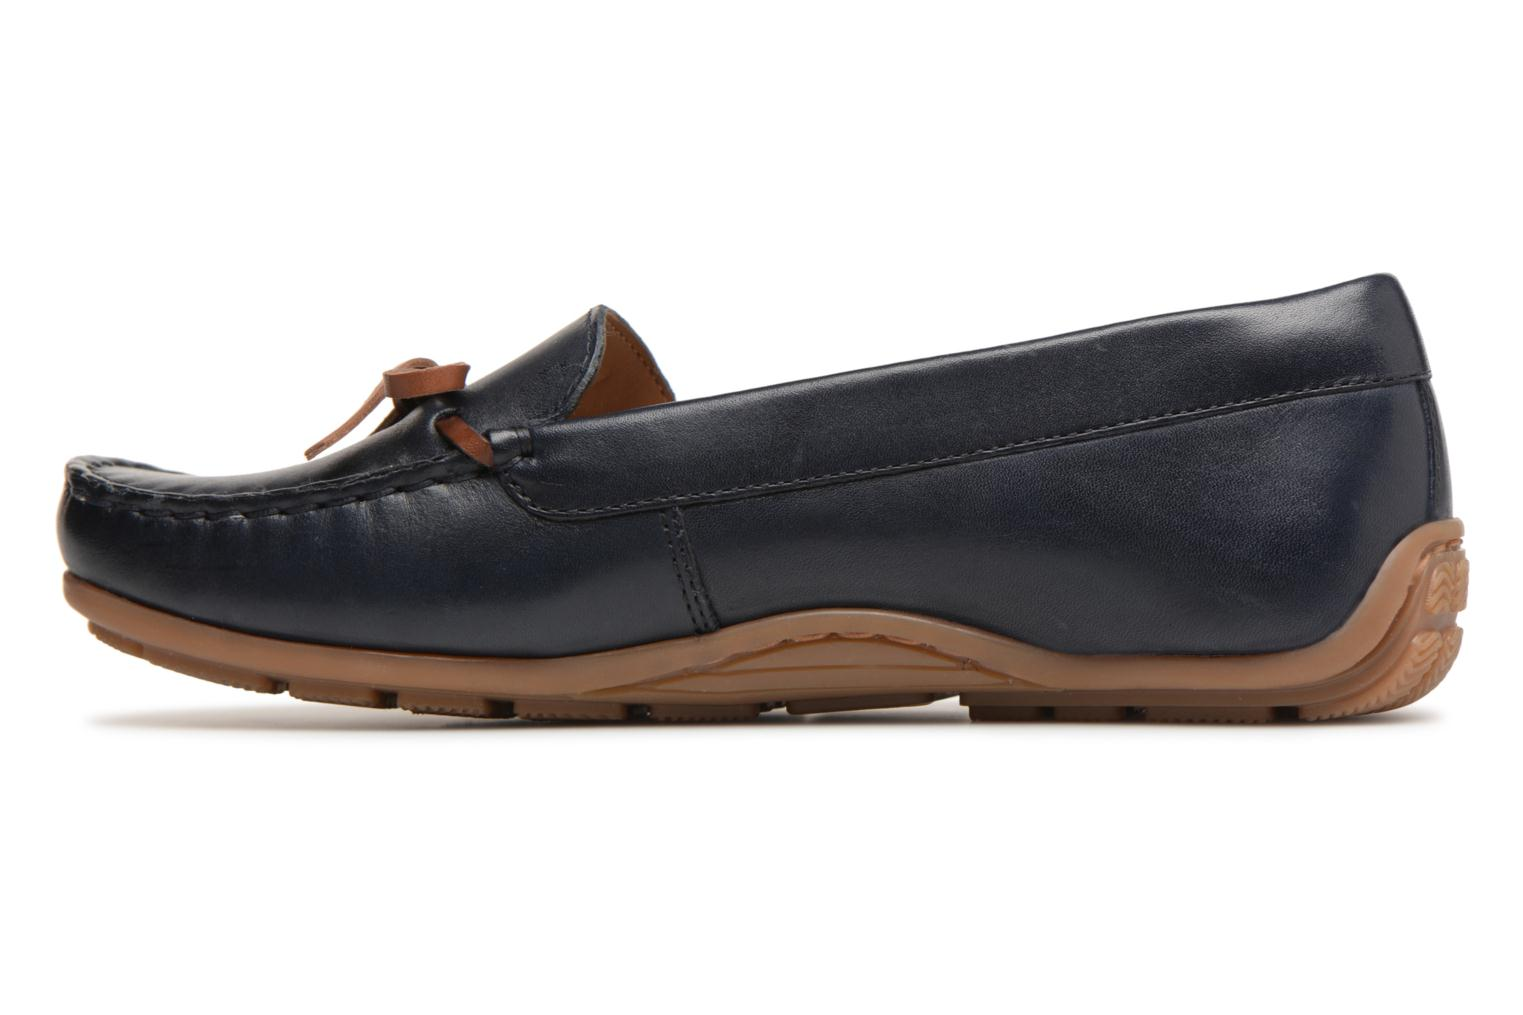 DAMEO SWING Navy leather